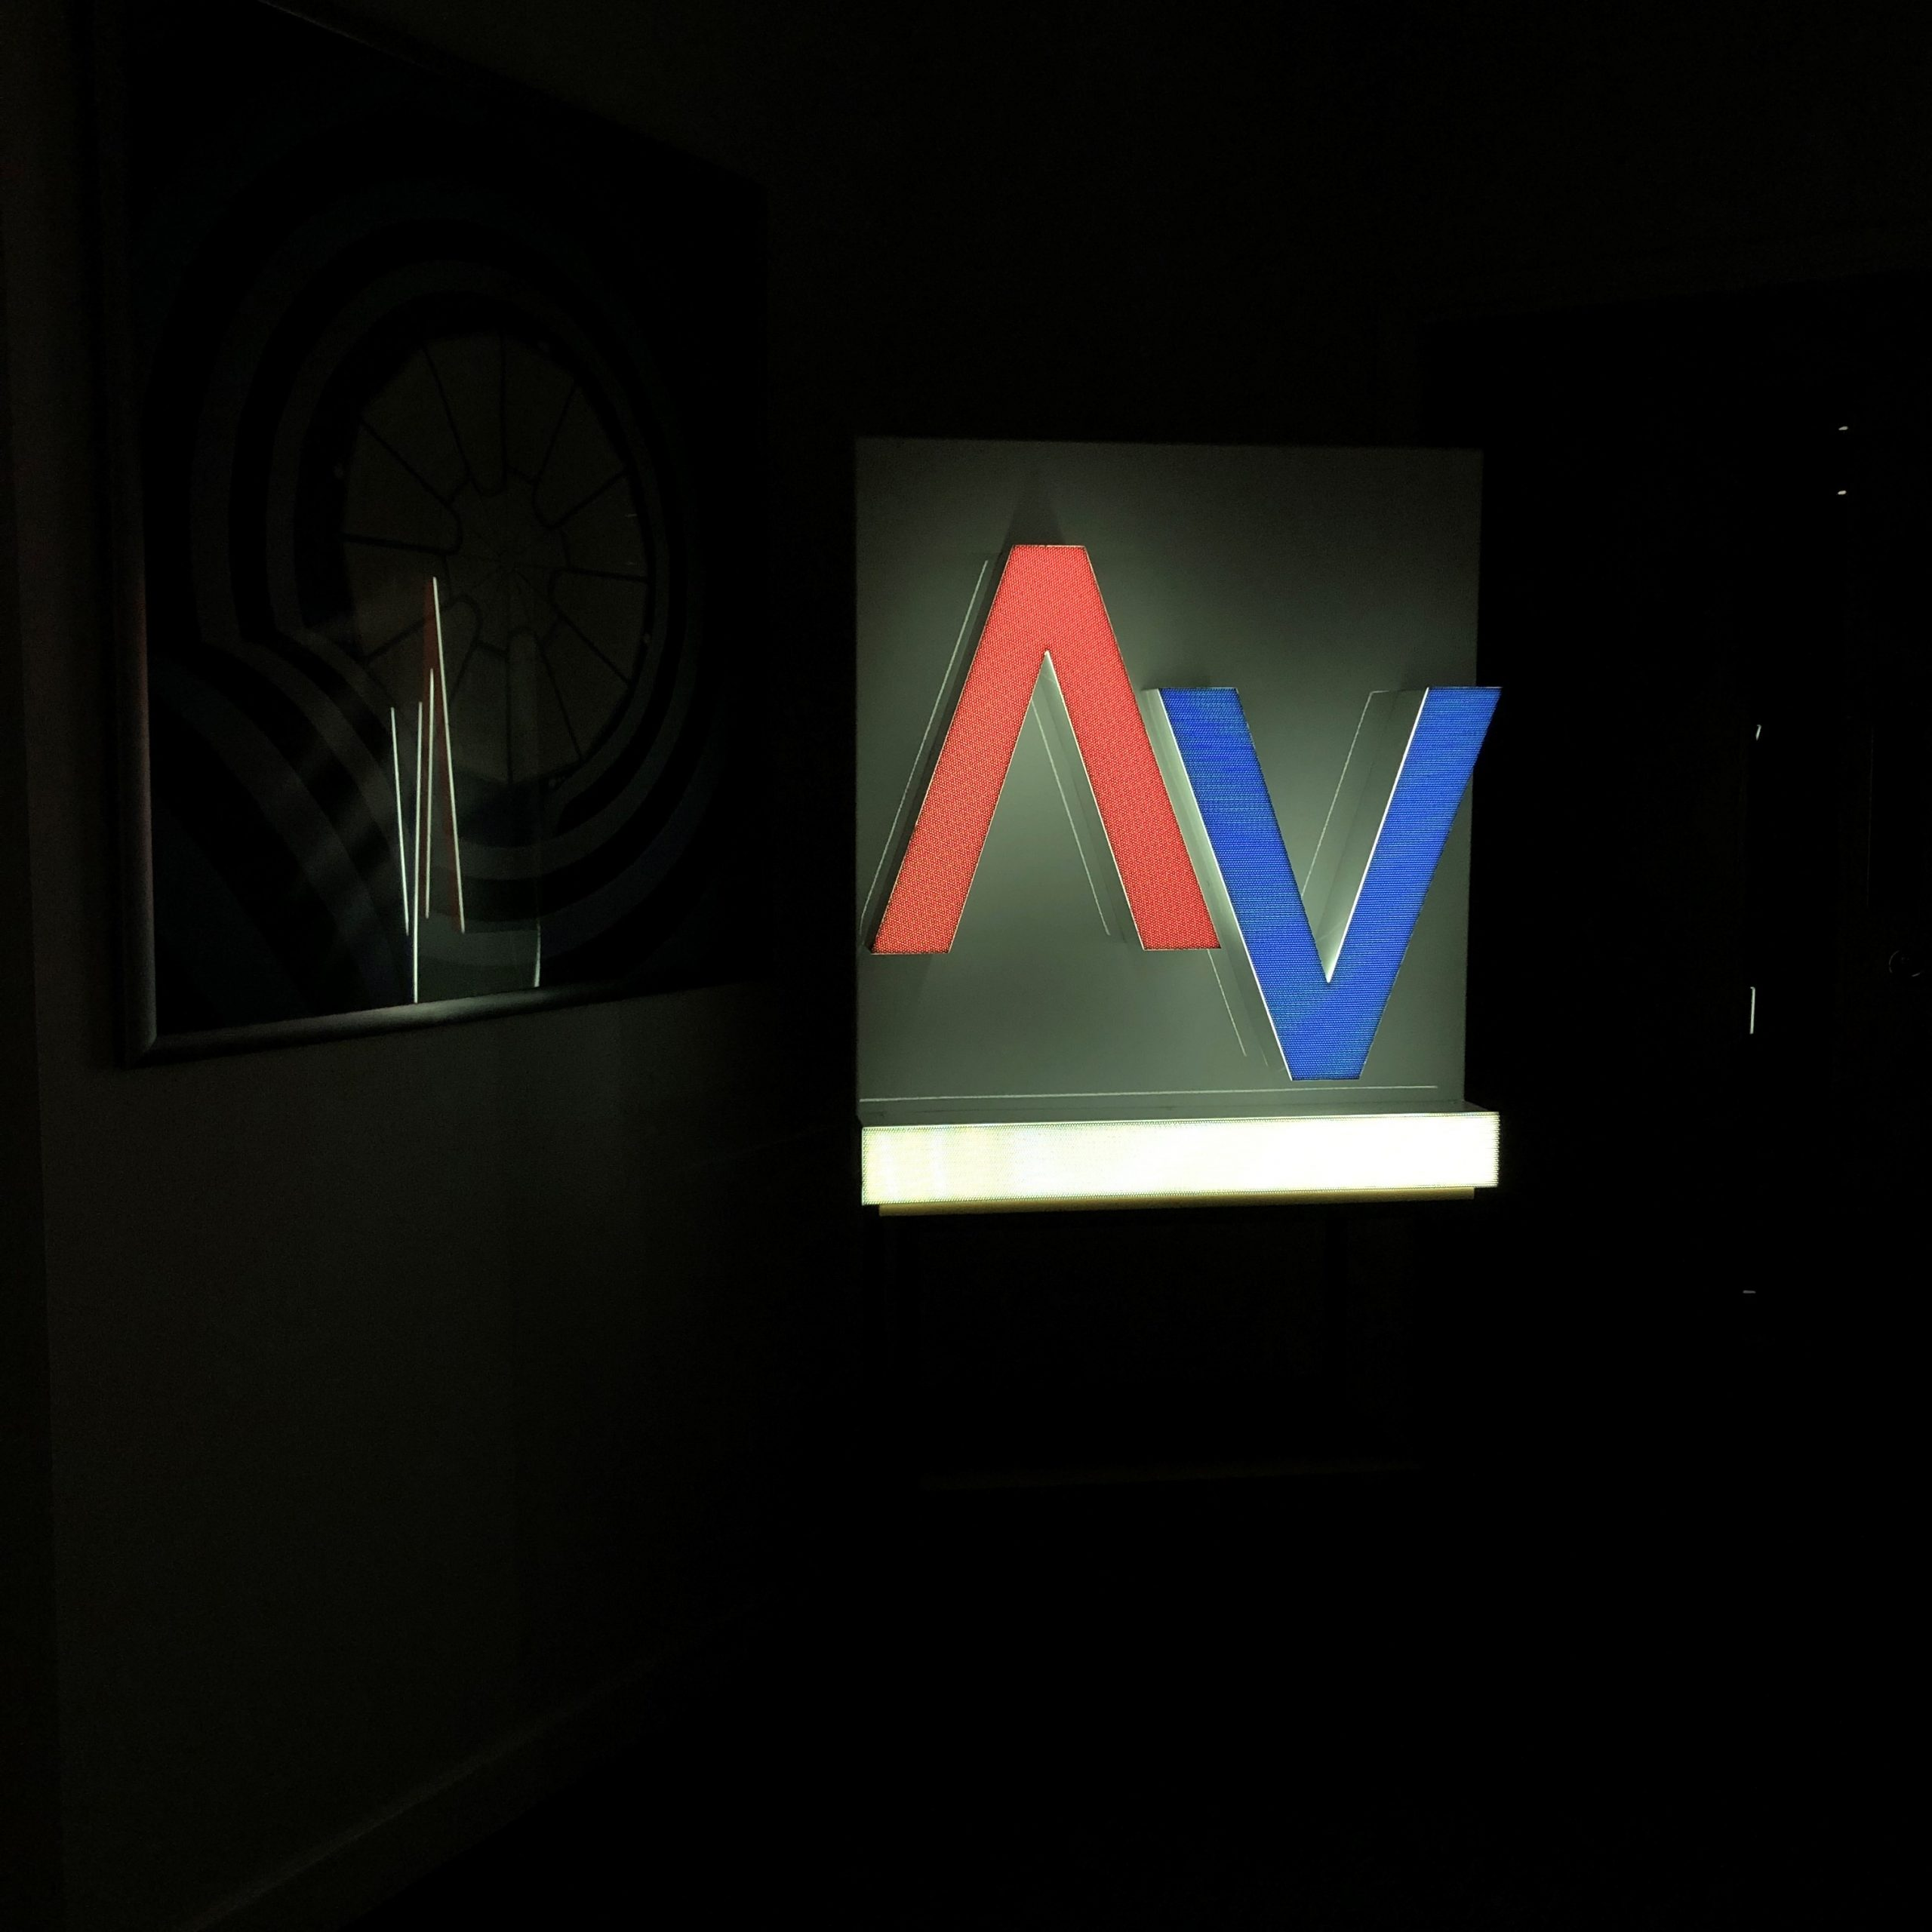 Black Perforated Dual Color Signage Channel Letter Nighttime